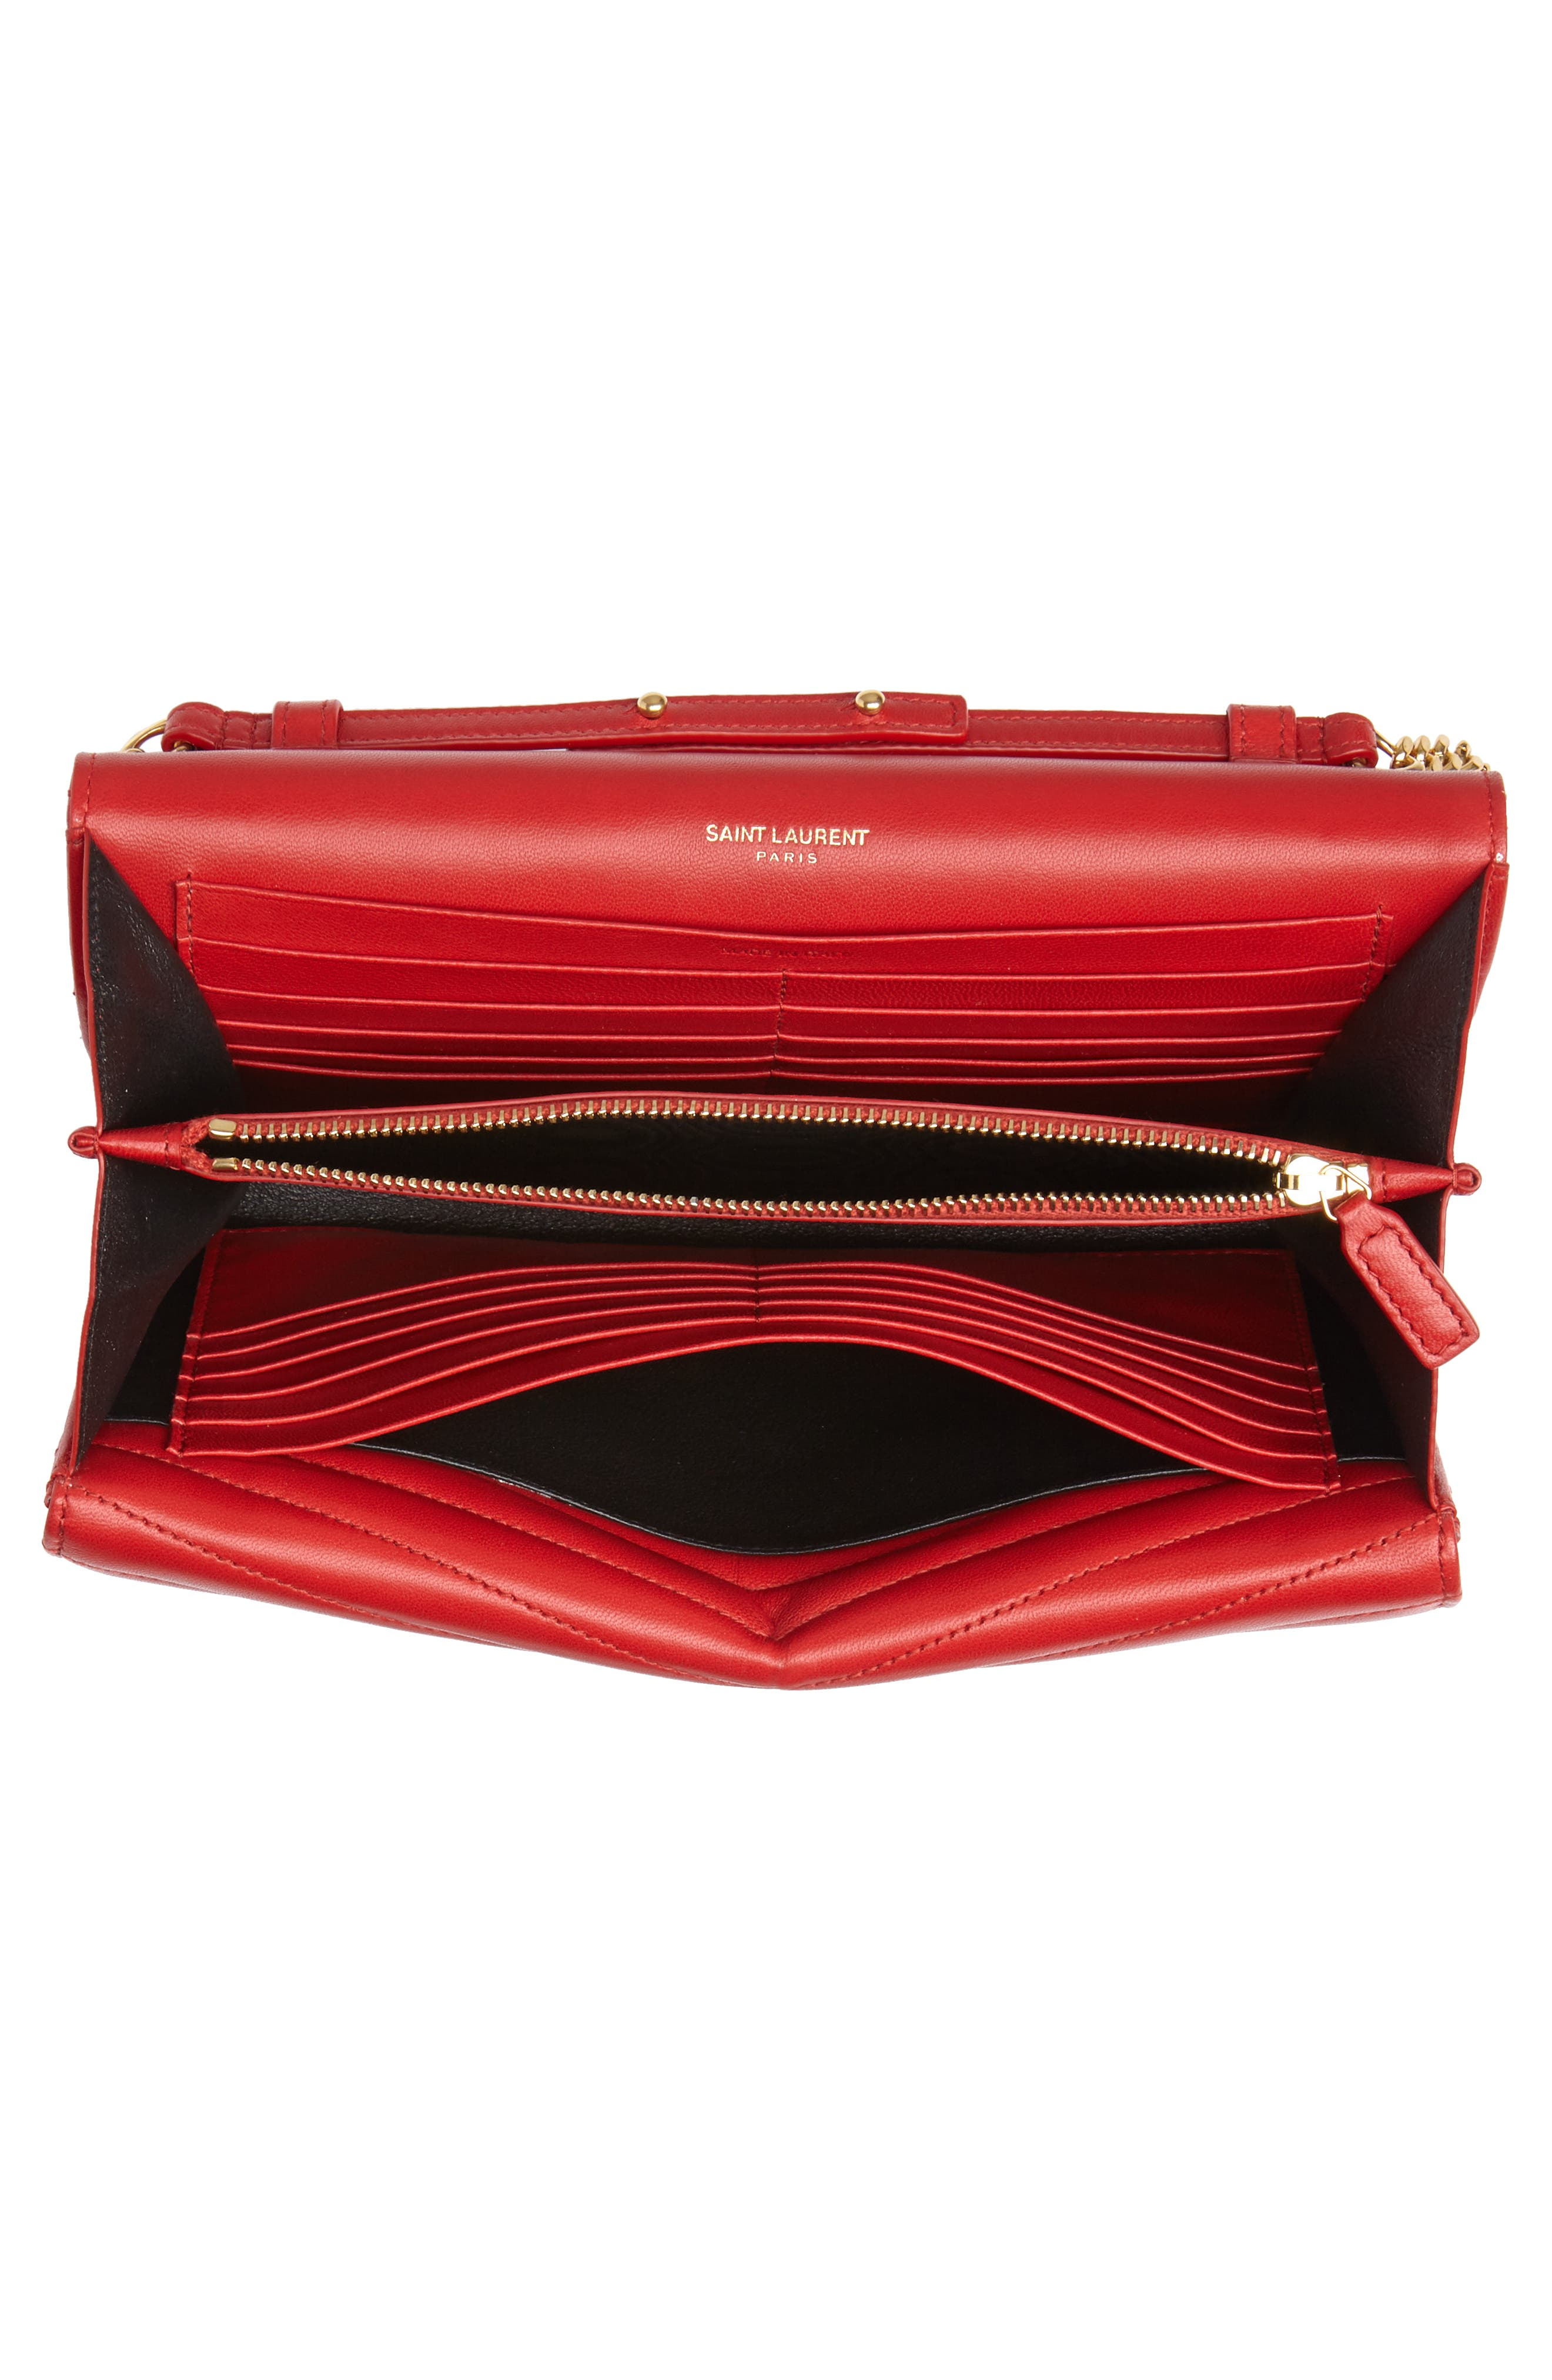 SAINT LAURENT, Sulpice Leather Crossbody Wallet, Alternate thumbnail 4, color, BANDANA RED